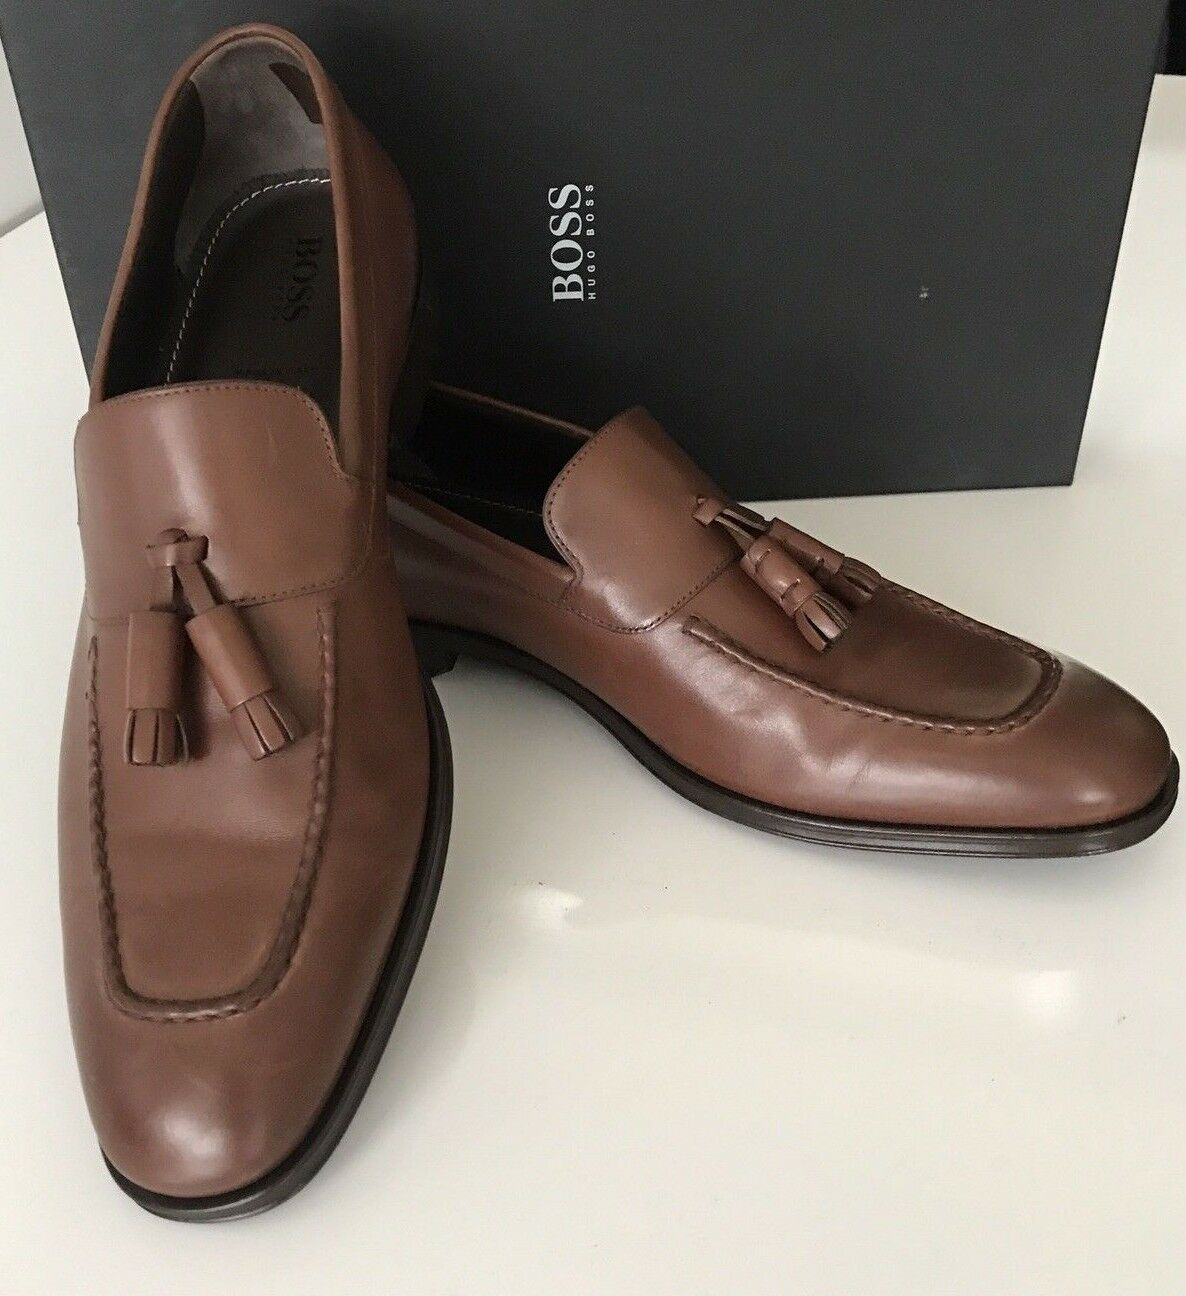 NIB  475 Boss Hugo Boss Scultos Mens Leather Penny Loafer shoes Brown 9 US IT